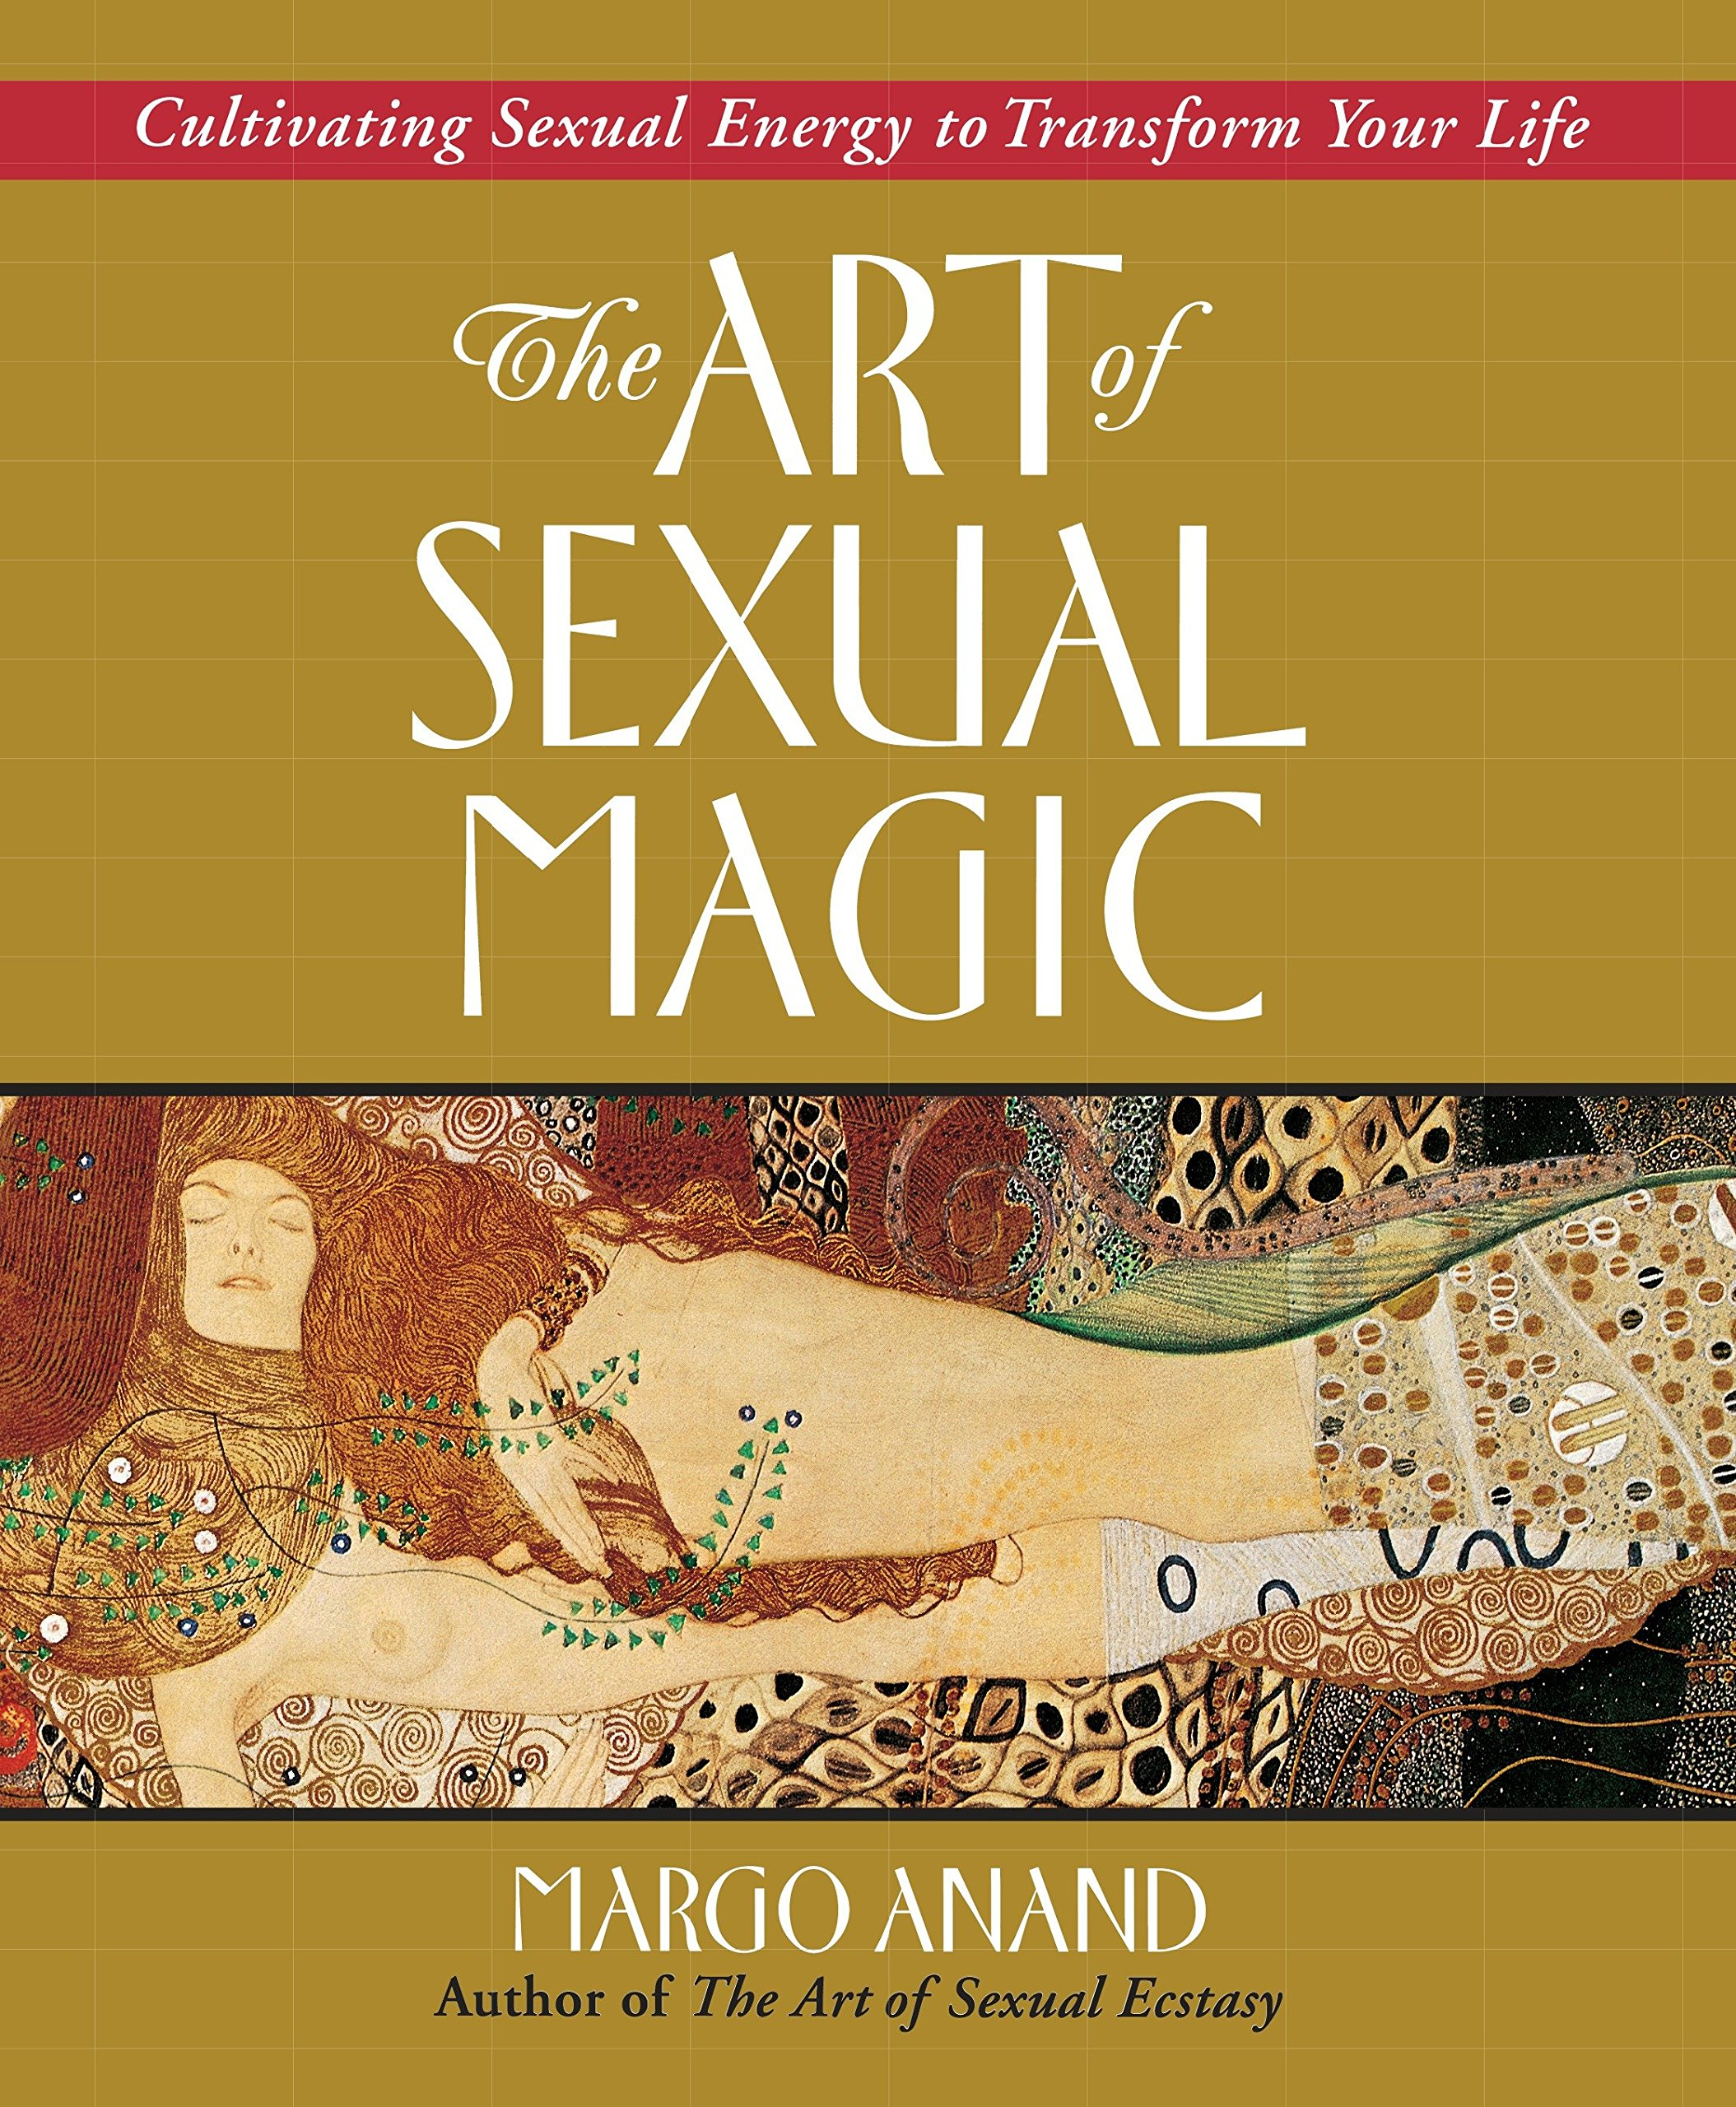 Magical tantric sexual health